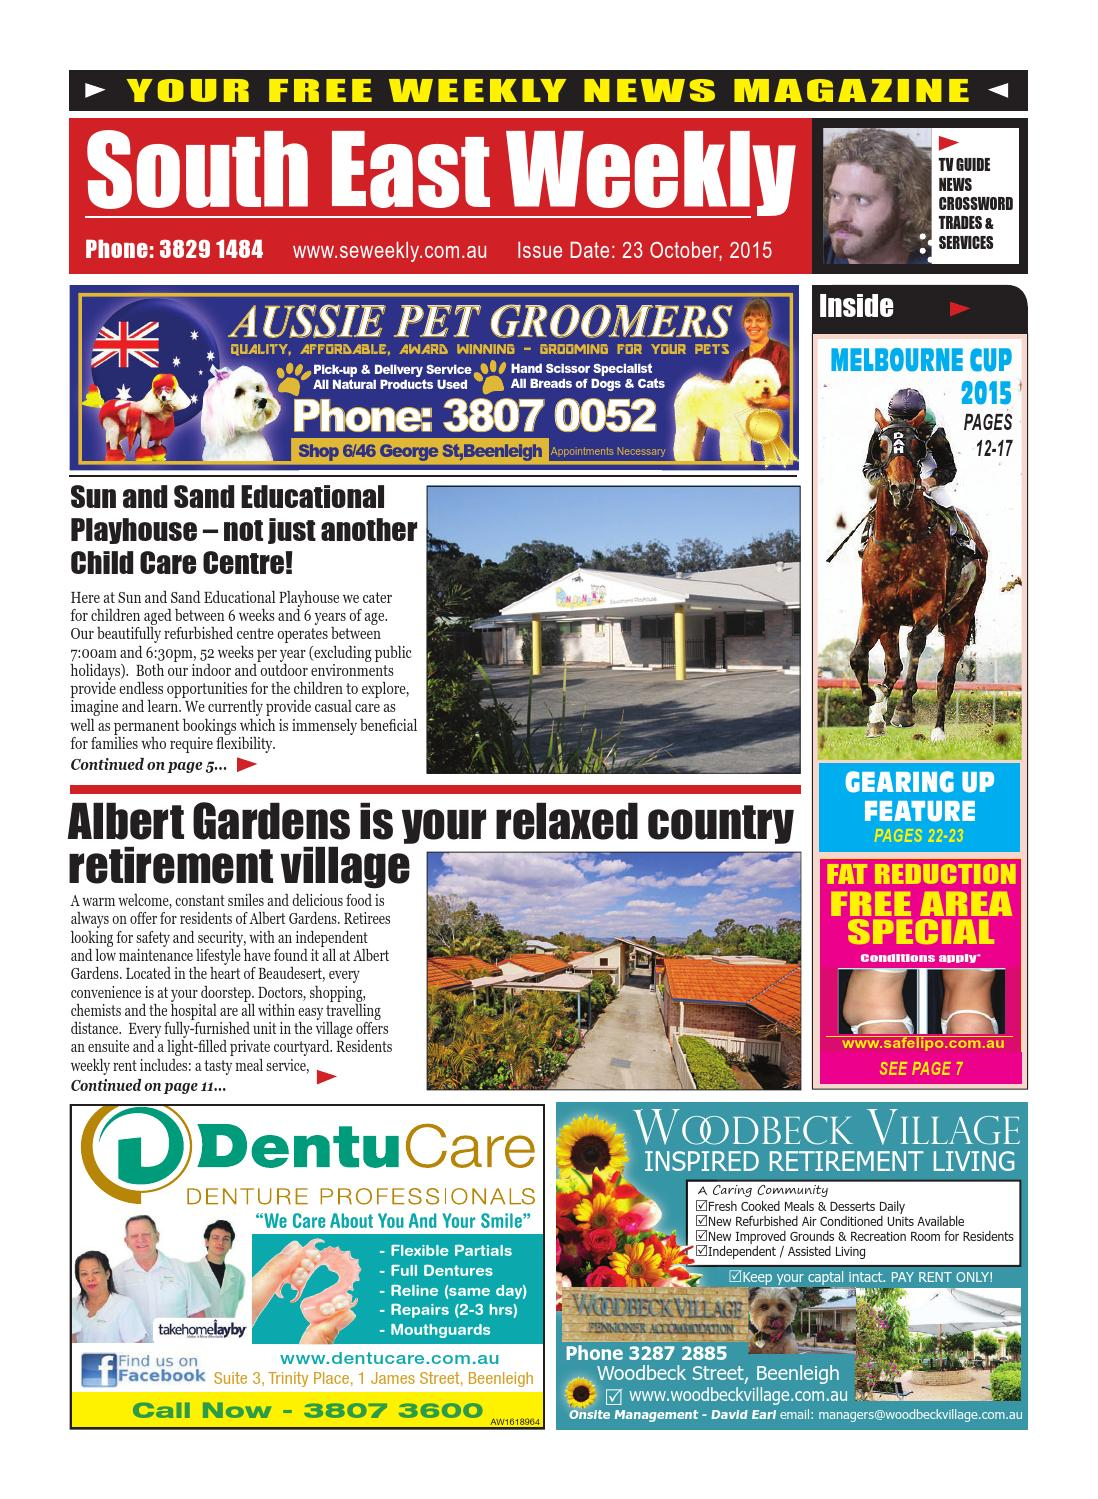 Ana Mhv Porno south east weekly magazine - october 23, 2015south east